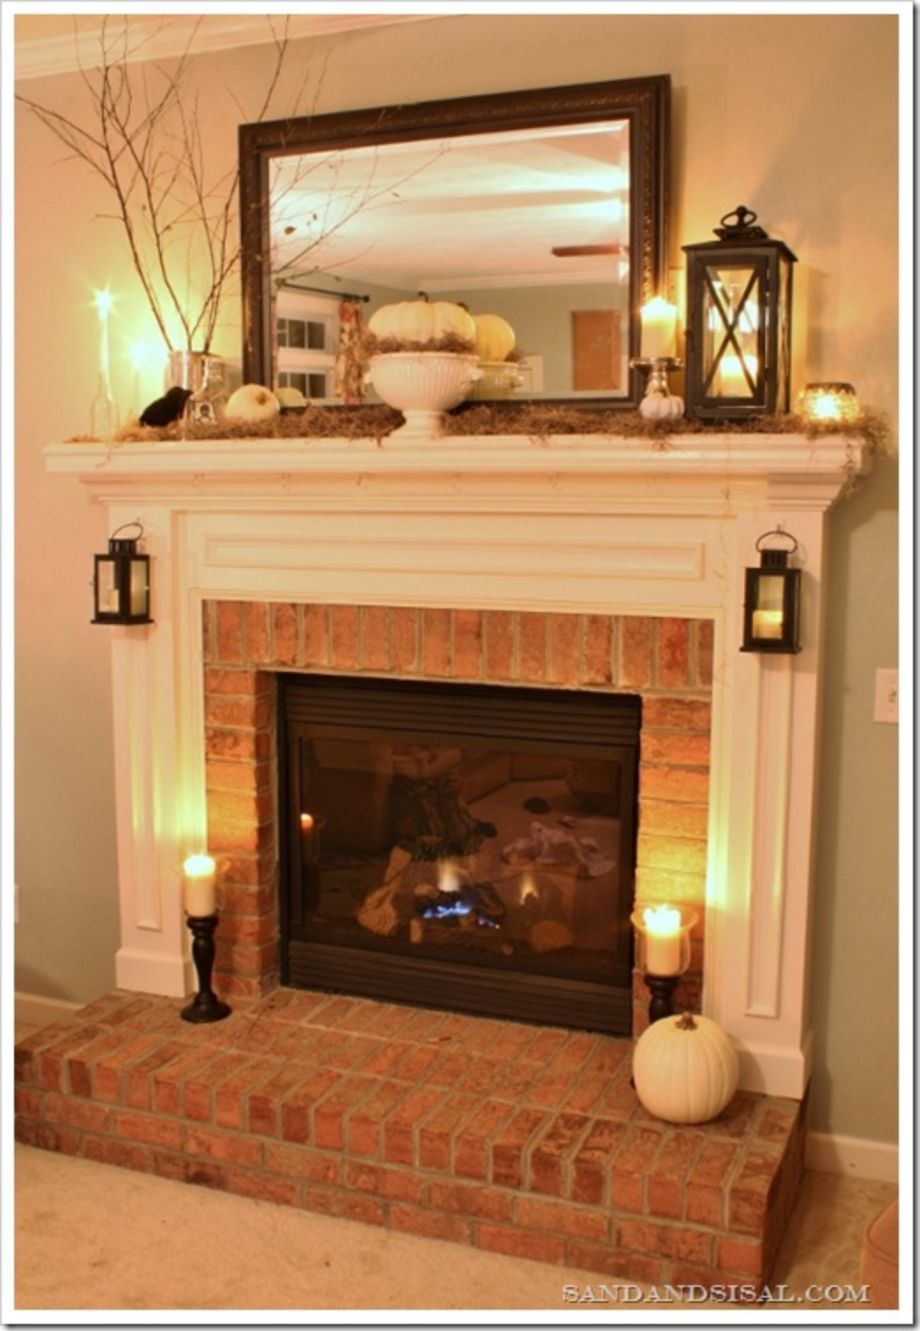 Incredible diy brick fireplace makeover ideas decorating the